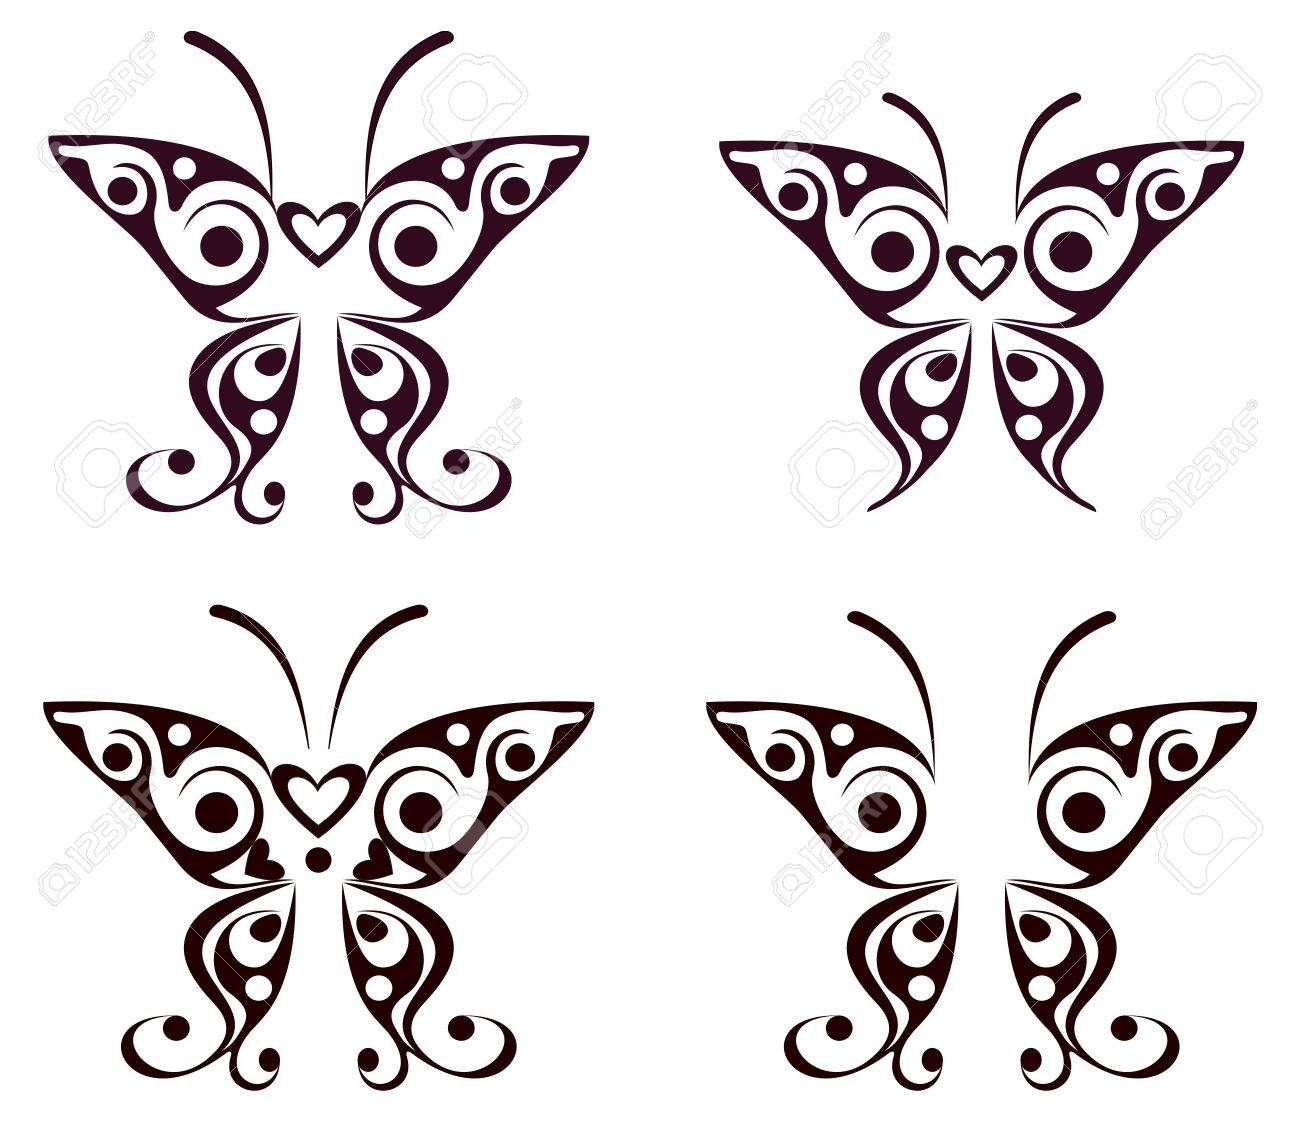 641338039d484 Butterfly vector tattoo - design element. Decoration, illustration. Stock  Vector - 5197932